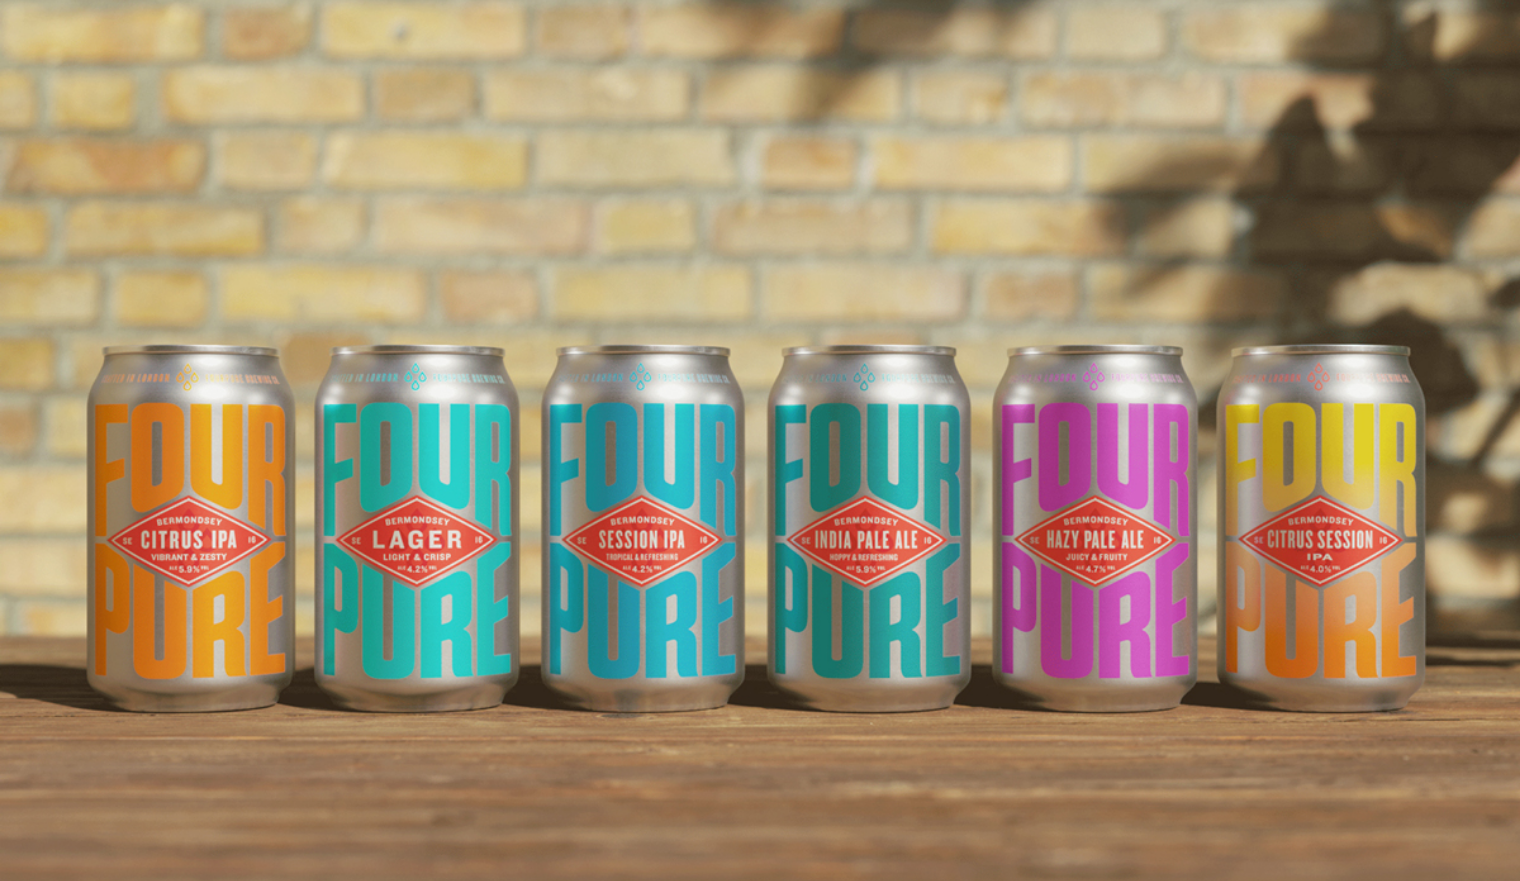 Fourpure rebrand takes this craft beer back to its roots